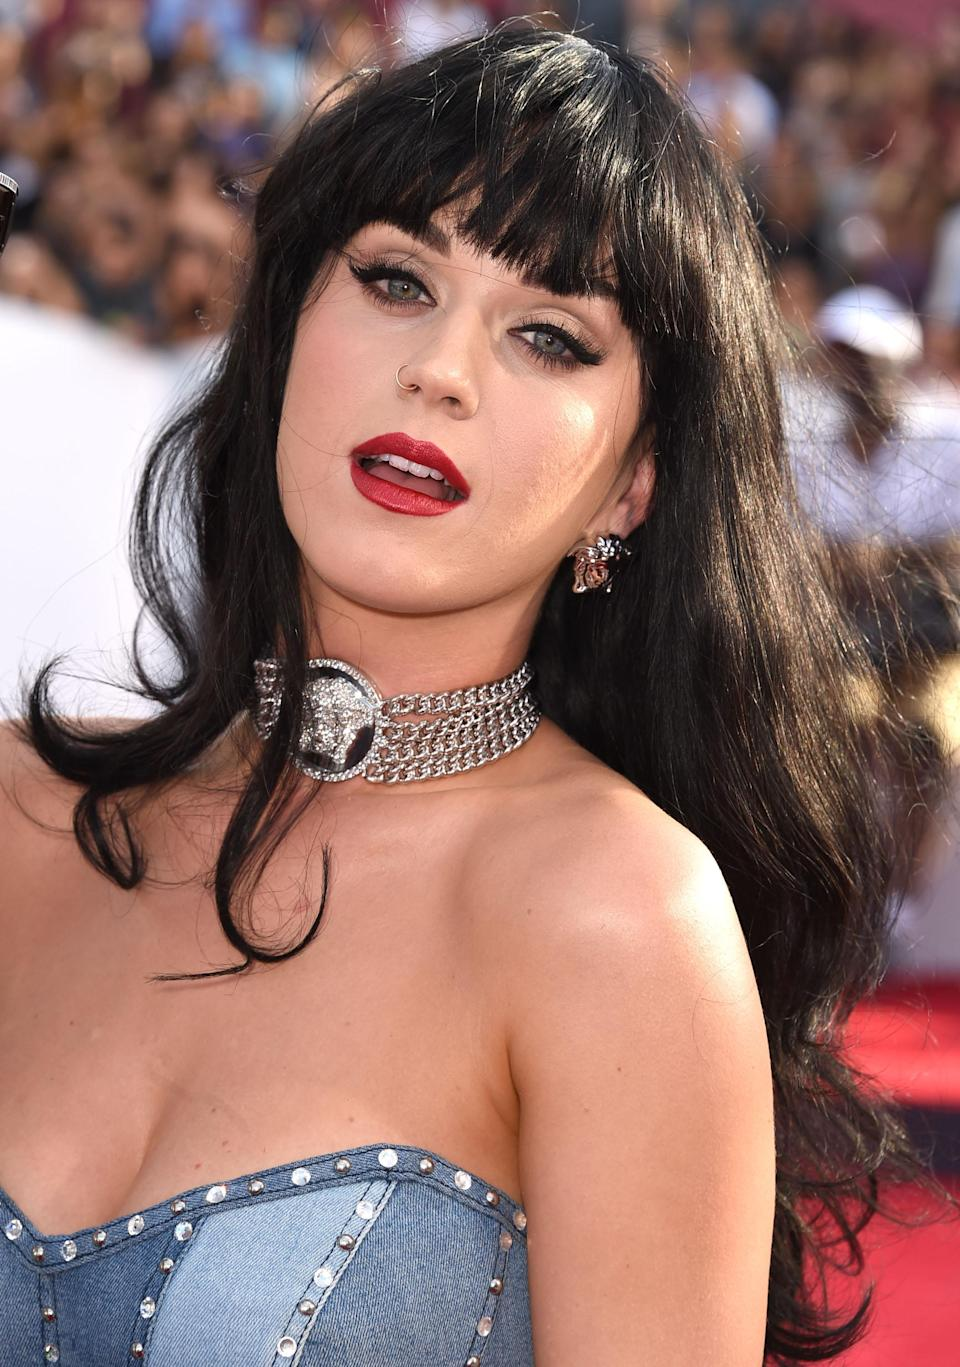 Although this look was worn at the 2014 VMAs, Katy Perry's classic cat eye, red lip, bangs, and denim-on-denim could've been just as at-home at the annual CMAs, too.